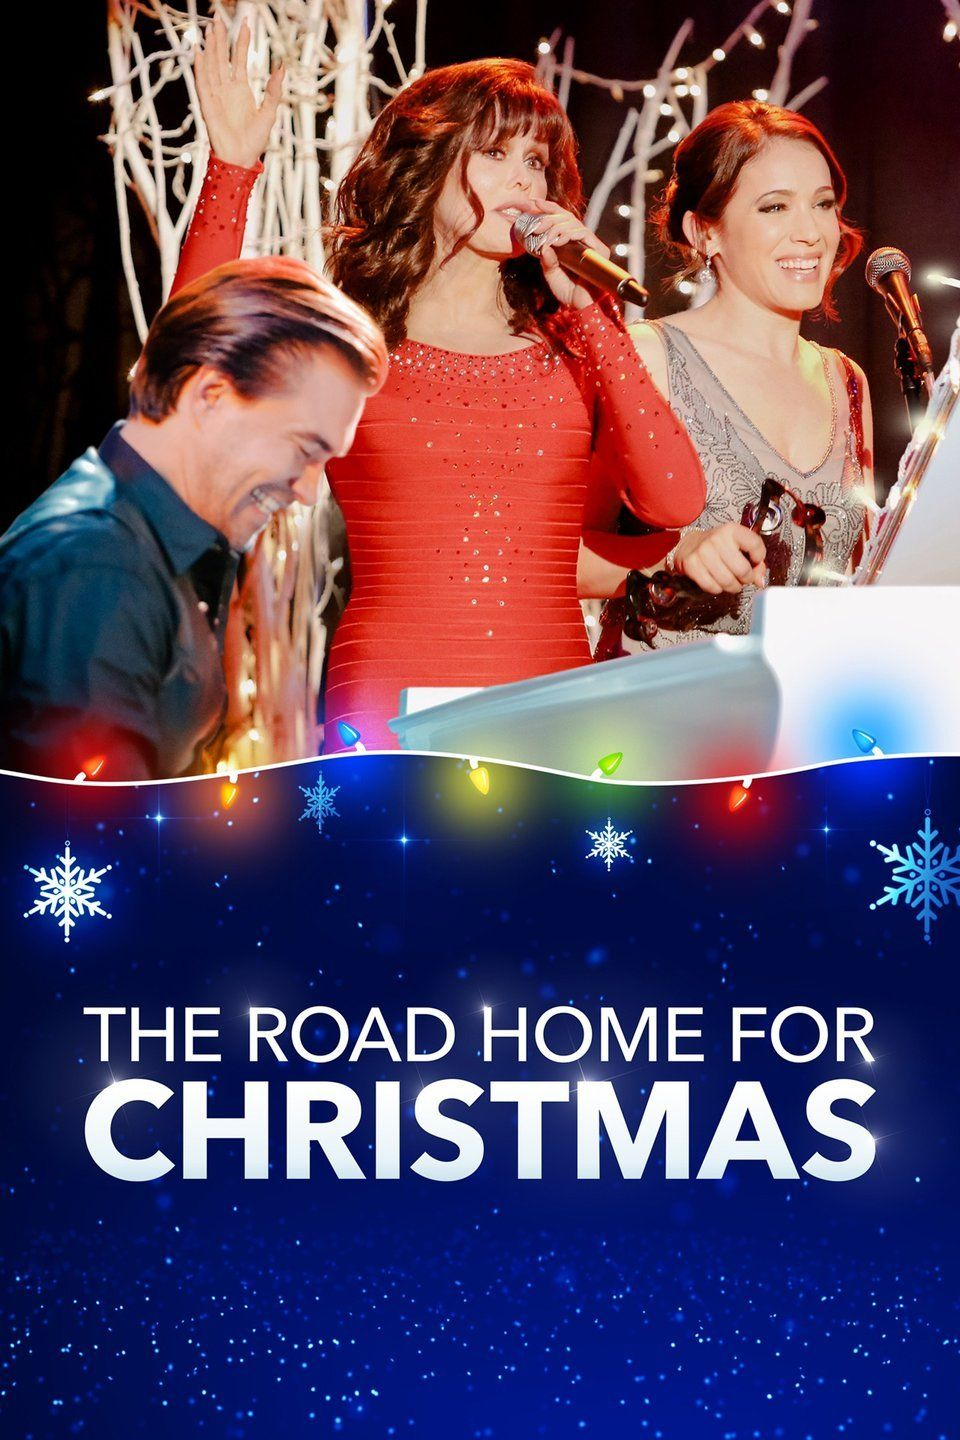 Road To Christmas 2020 Watch Online The Road Home for Christmas in 2020 | Christmas movies, Christmas